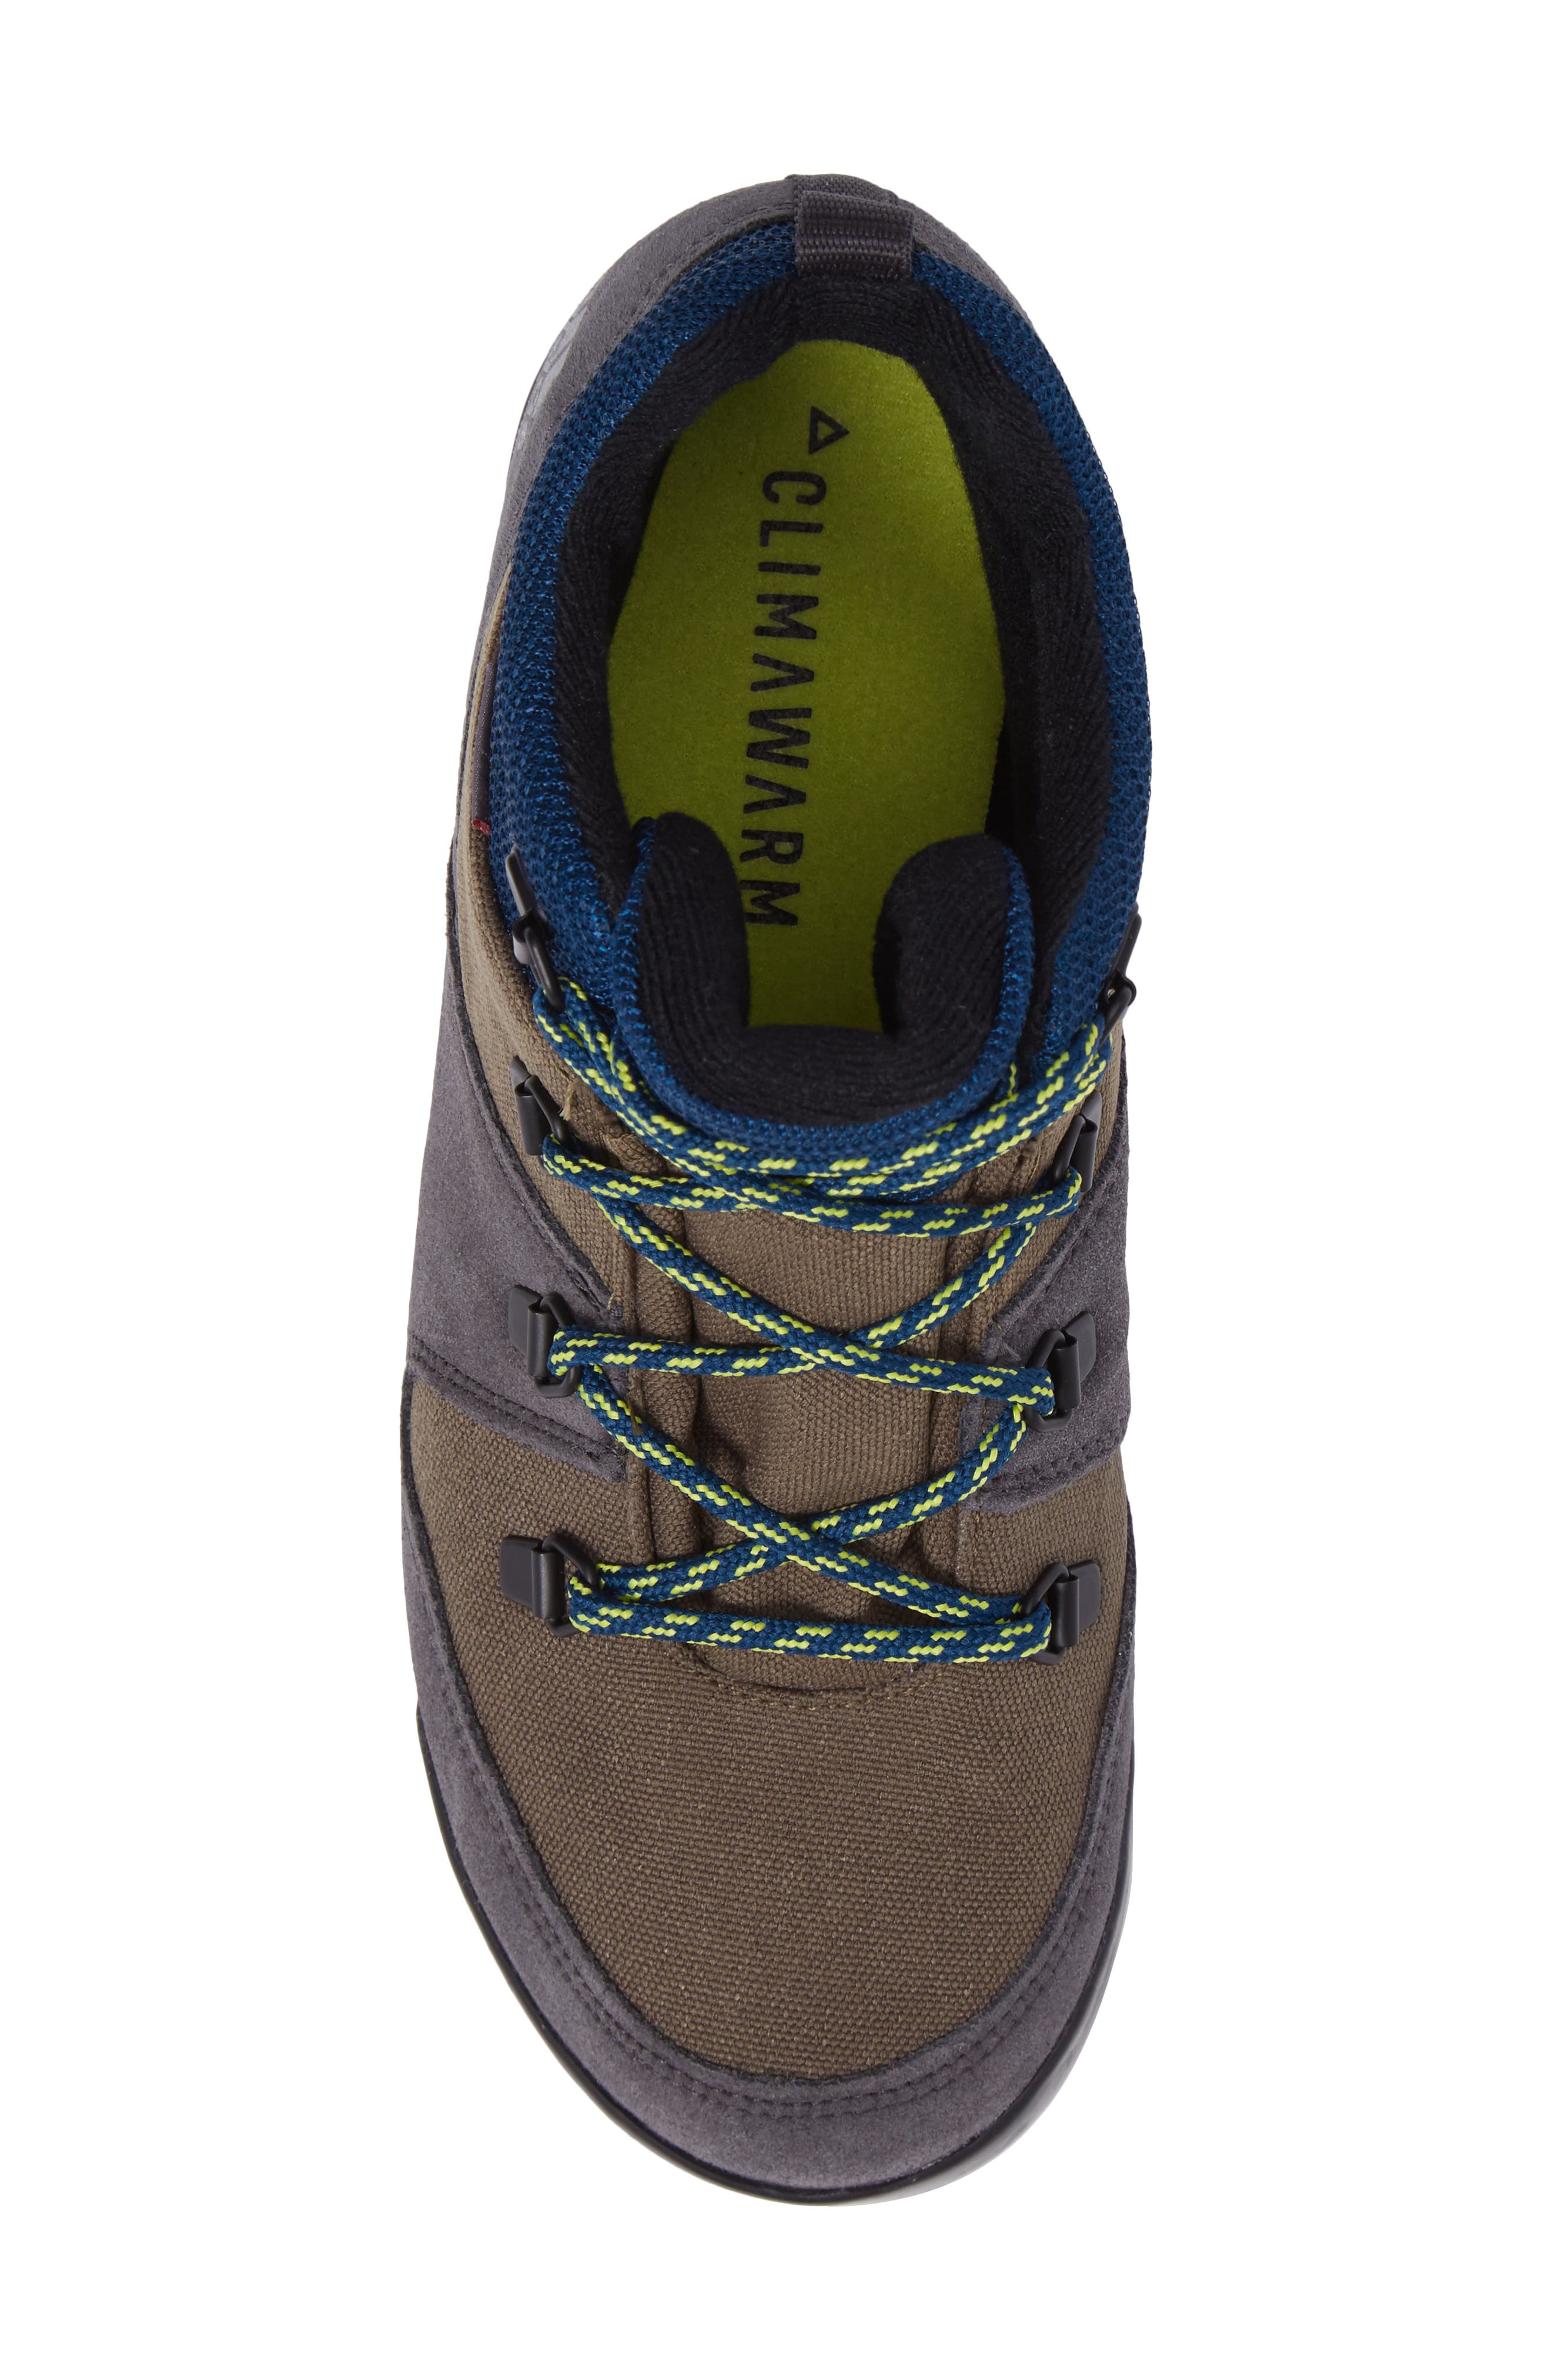 Snowpitch Insulated Sneaker Boot,                             Alternate thumbnail 5, color,                             Cargo/ Black/ Solar Yellow